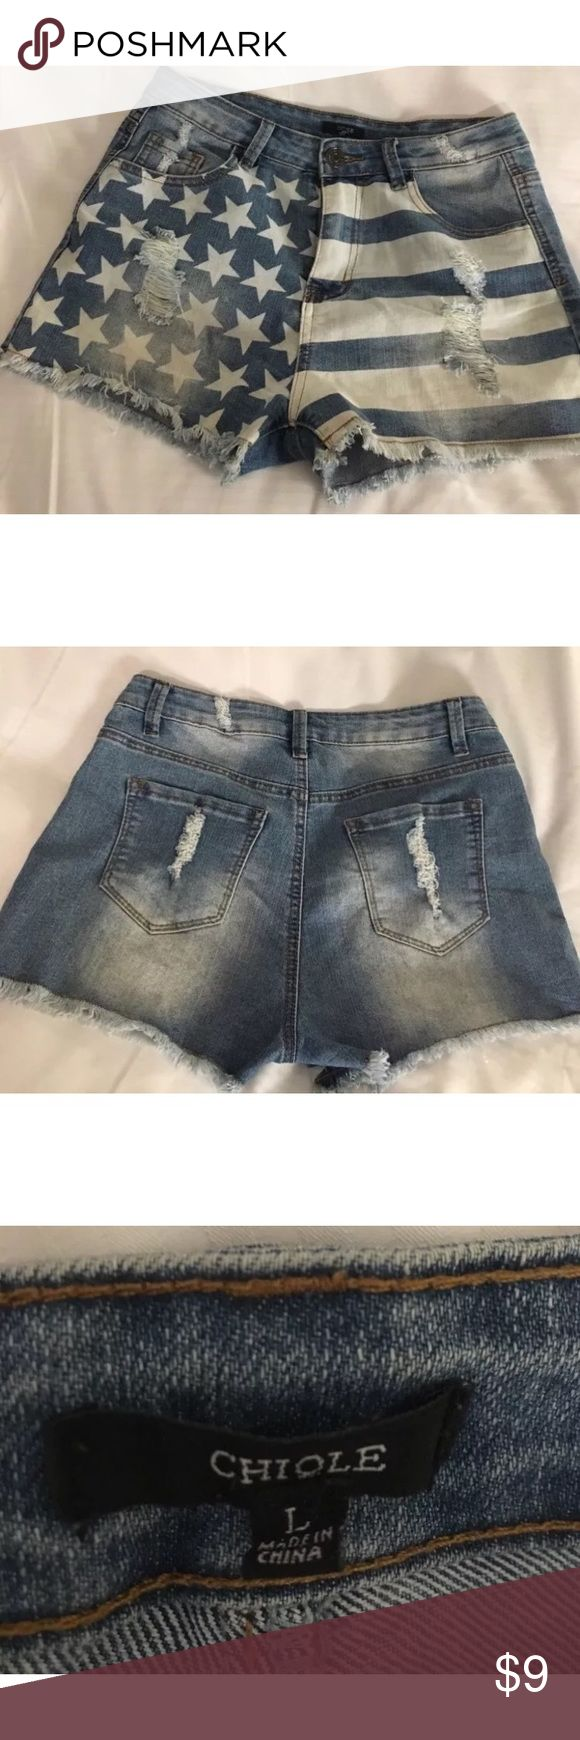 Americana Jean Shorts Chiqle brand.  Blues/whites American flag denim shirt shorts. Distressed accents Chiqle Shorts Jean Shorts